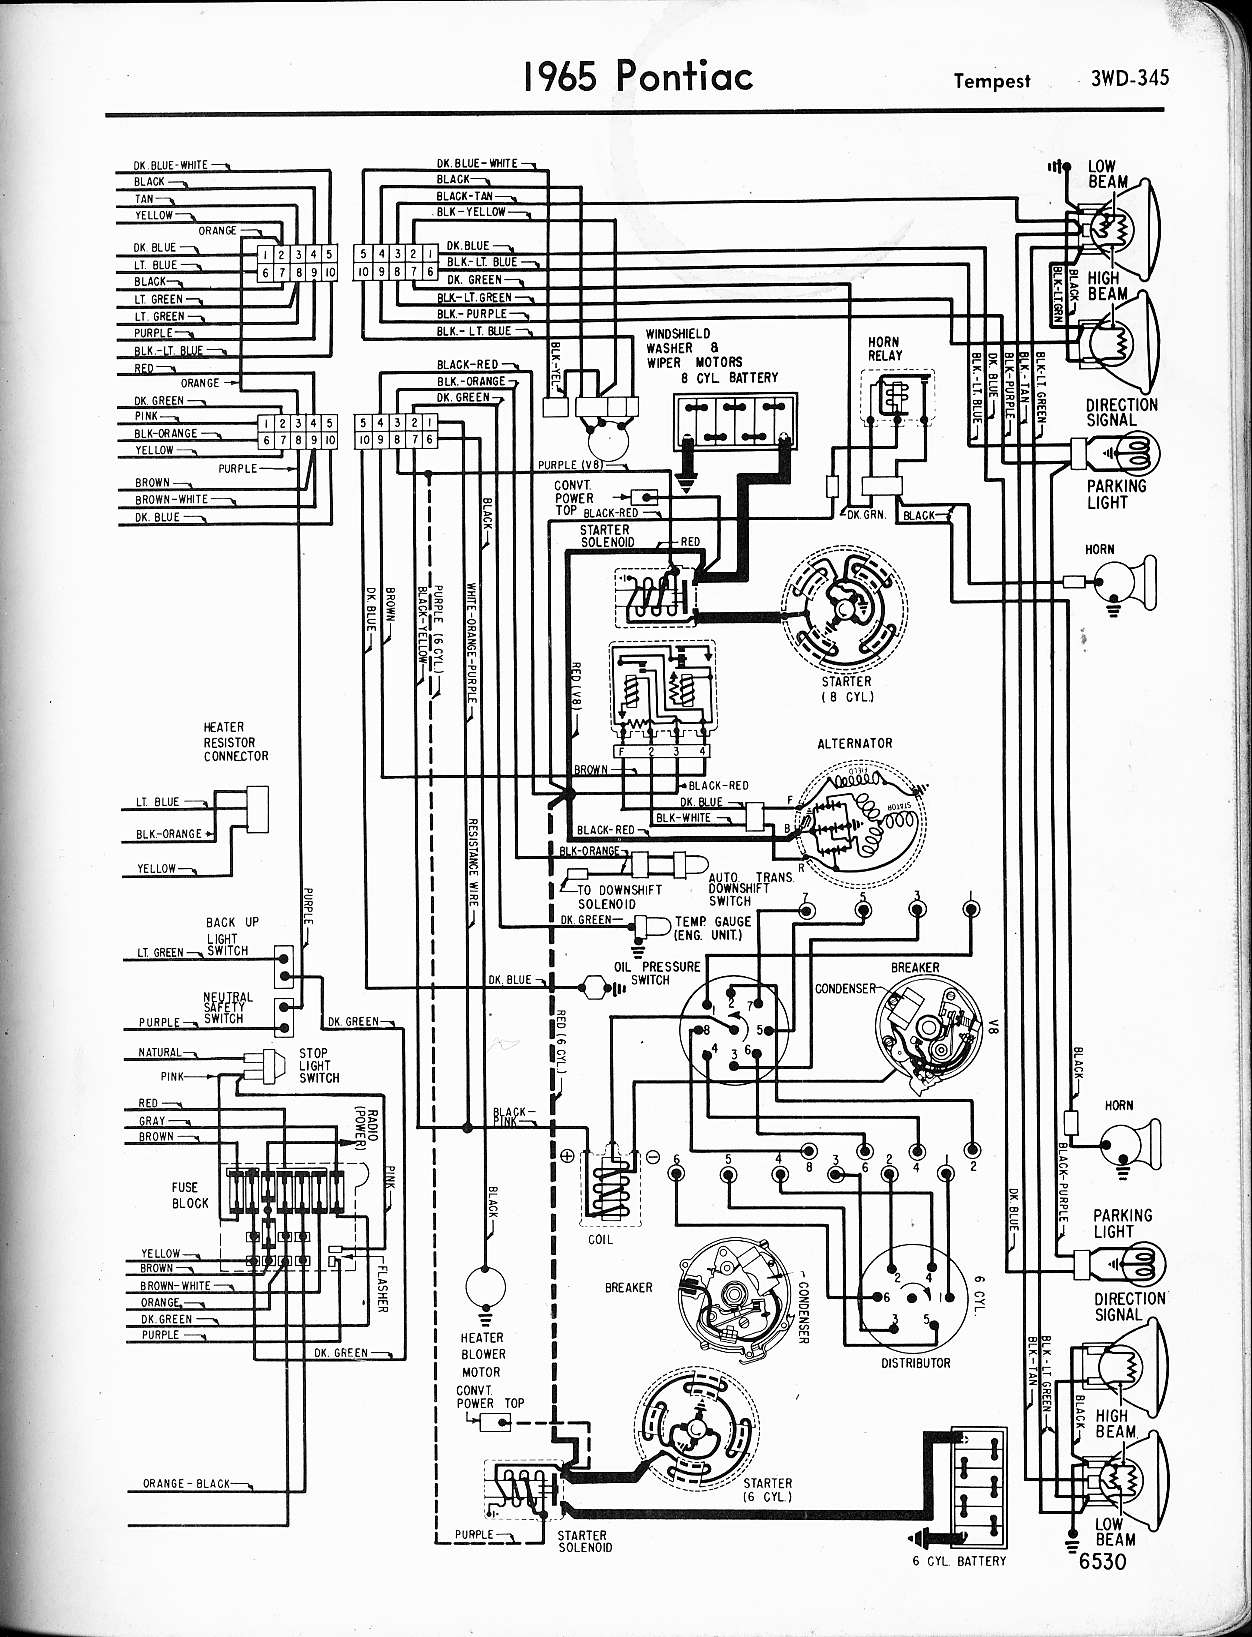 67 gto dash wiring diagram wiring diagram schematic